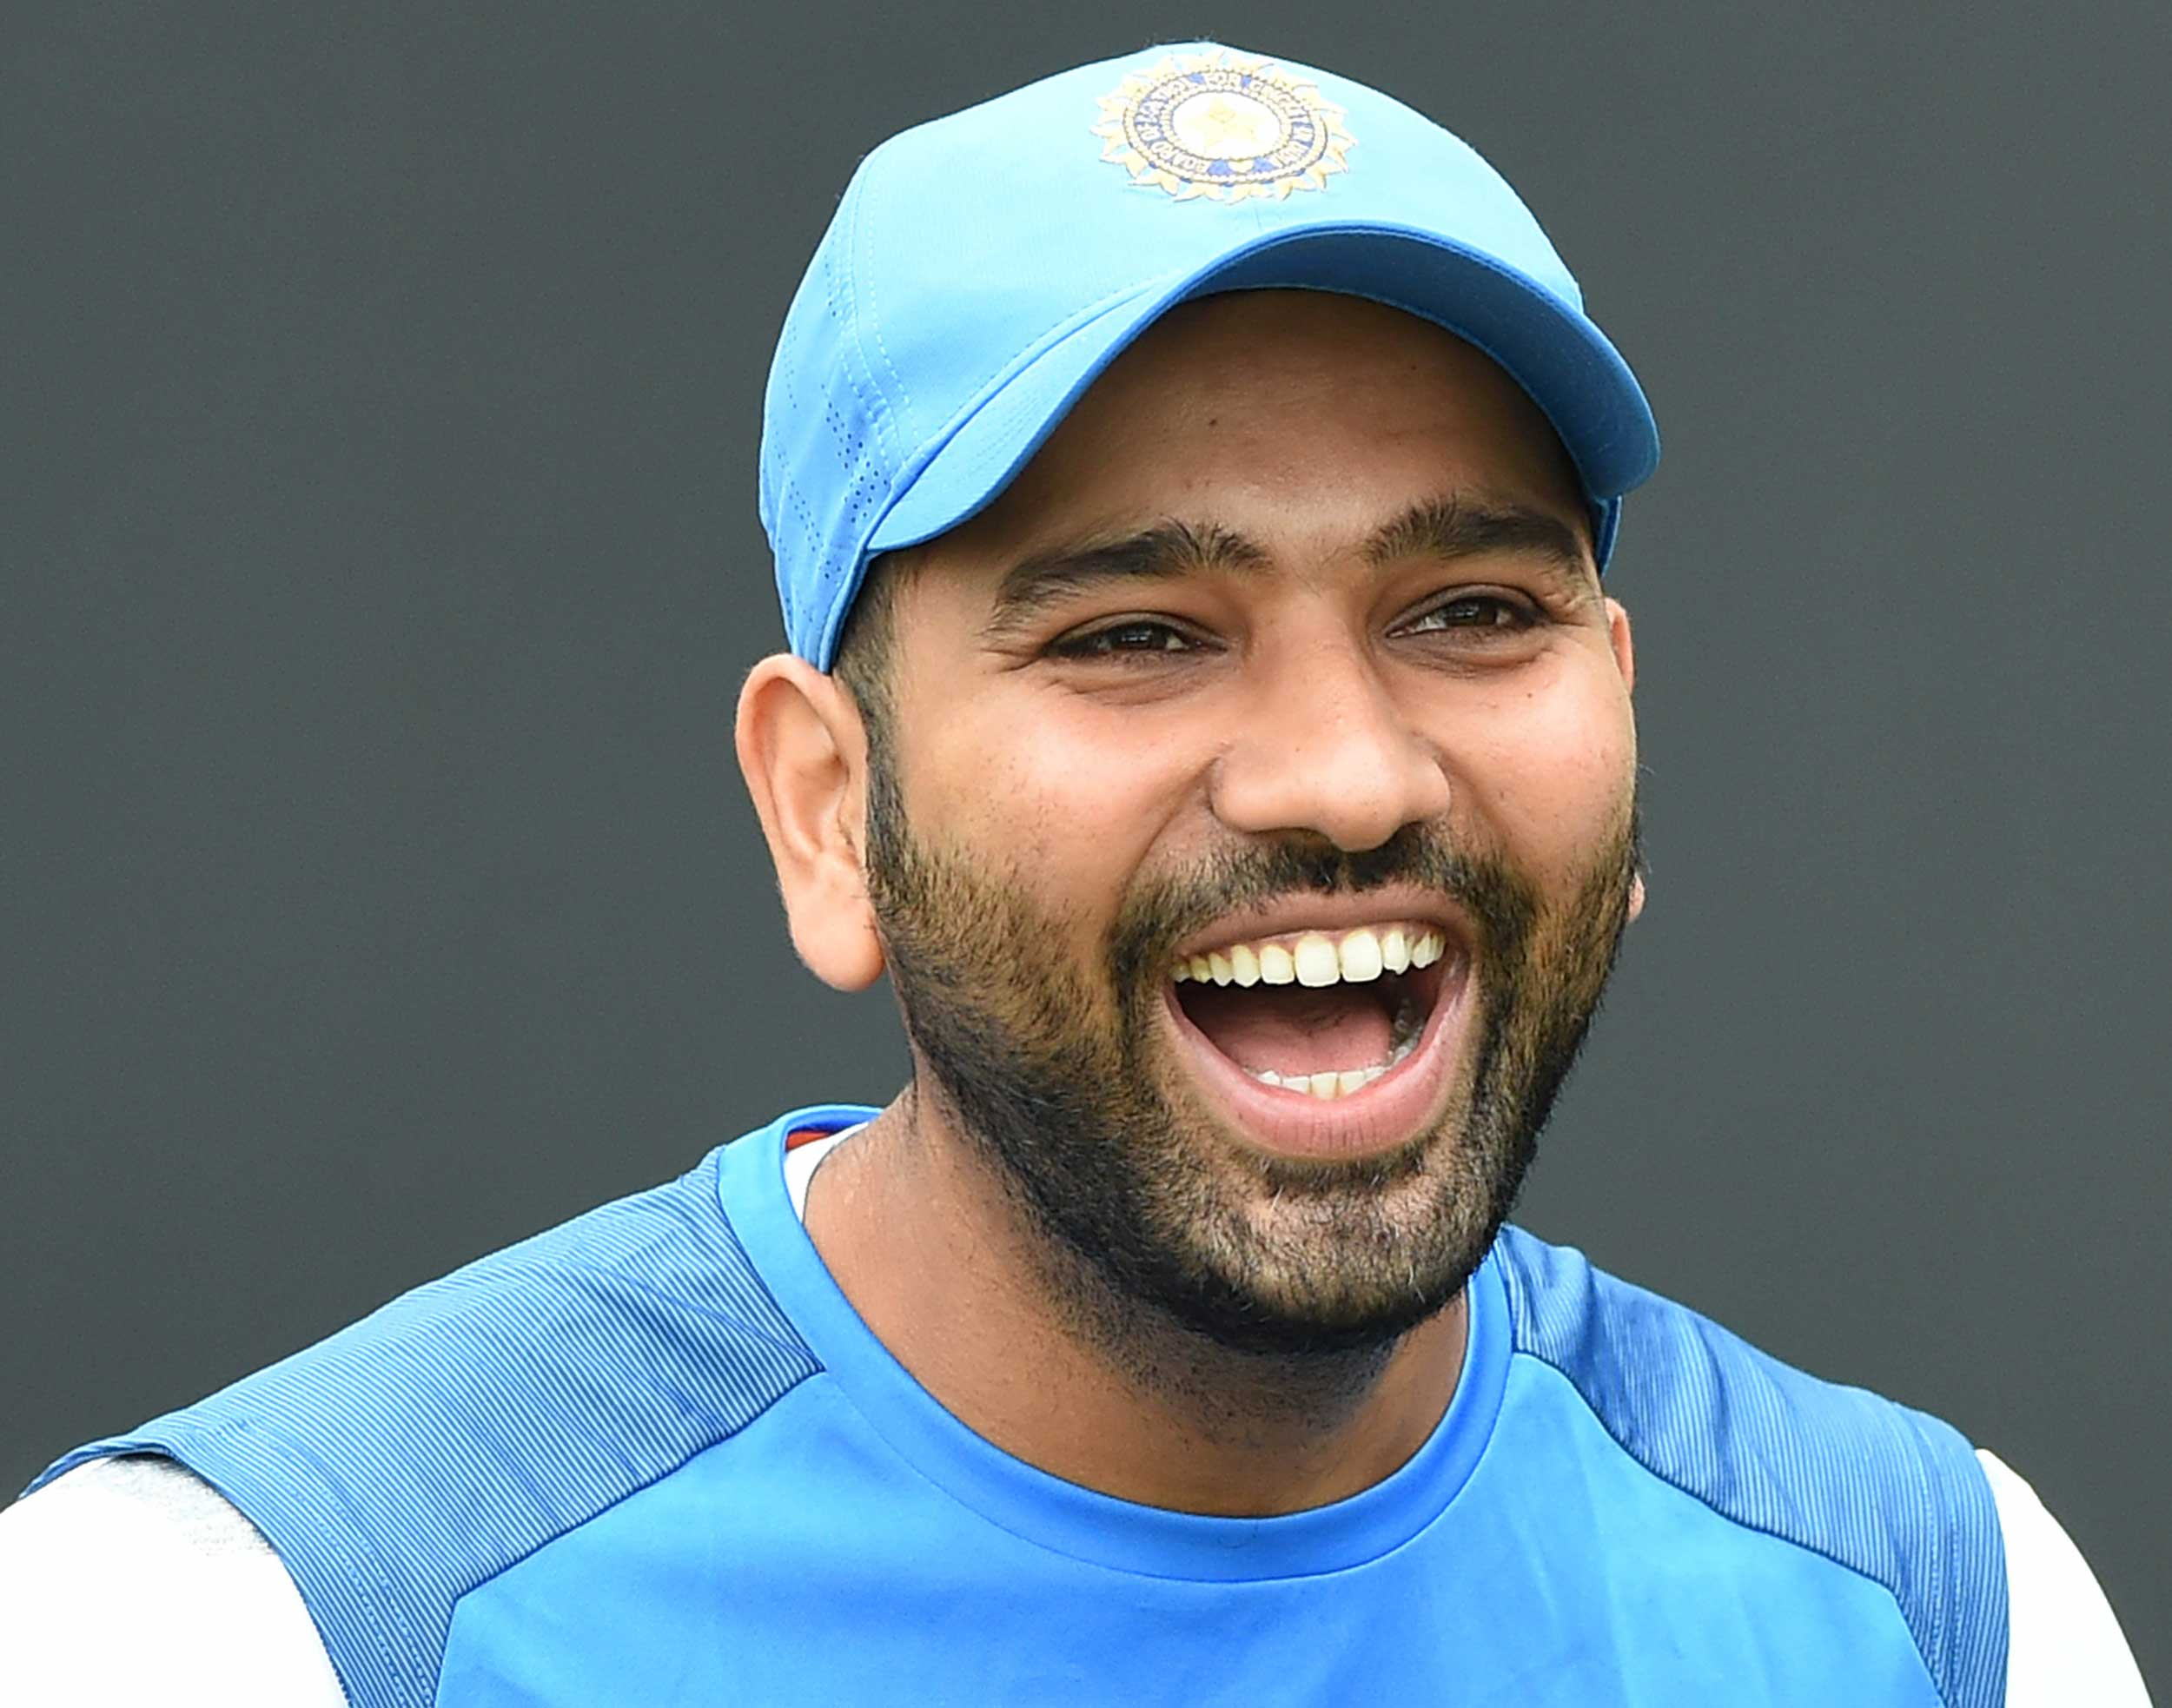 Rohit Sharma offered his business class seat to Mohammed Shami so he could enjoy some leg space.